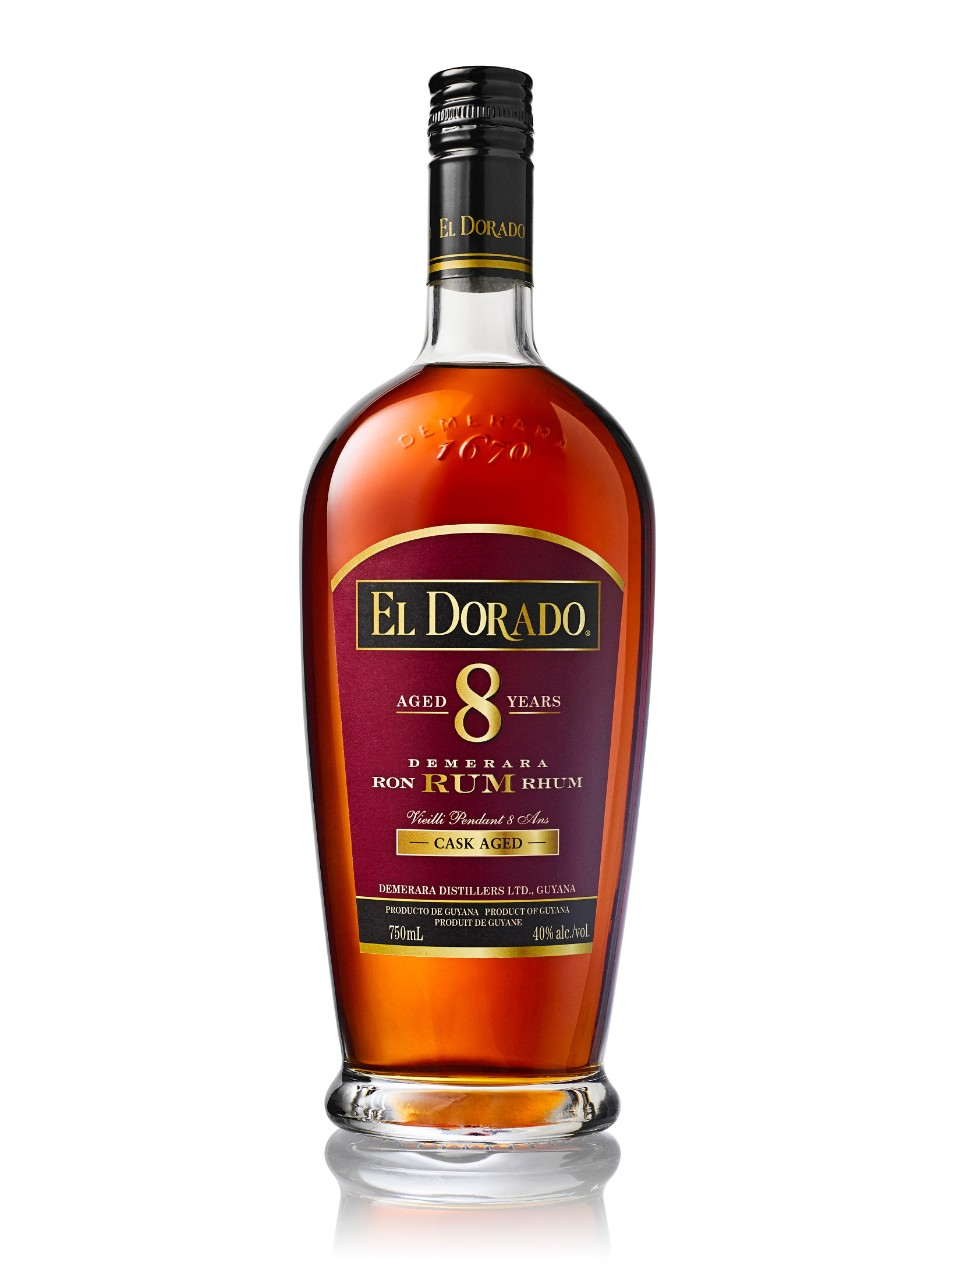 Image for El Dorado 8 Year Old Cask Aged Demerara Rum from LCBO